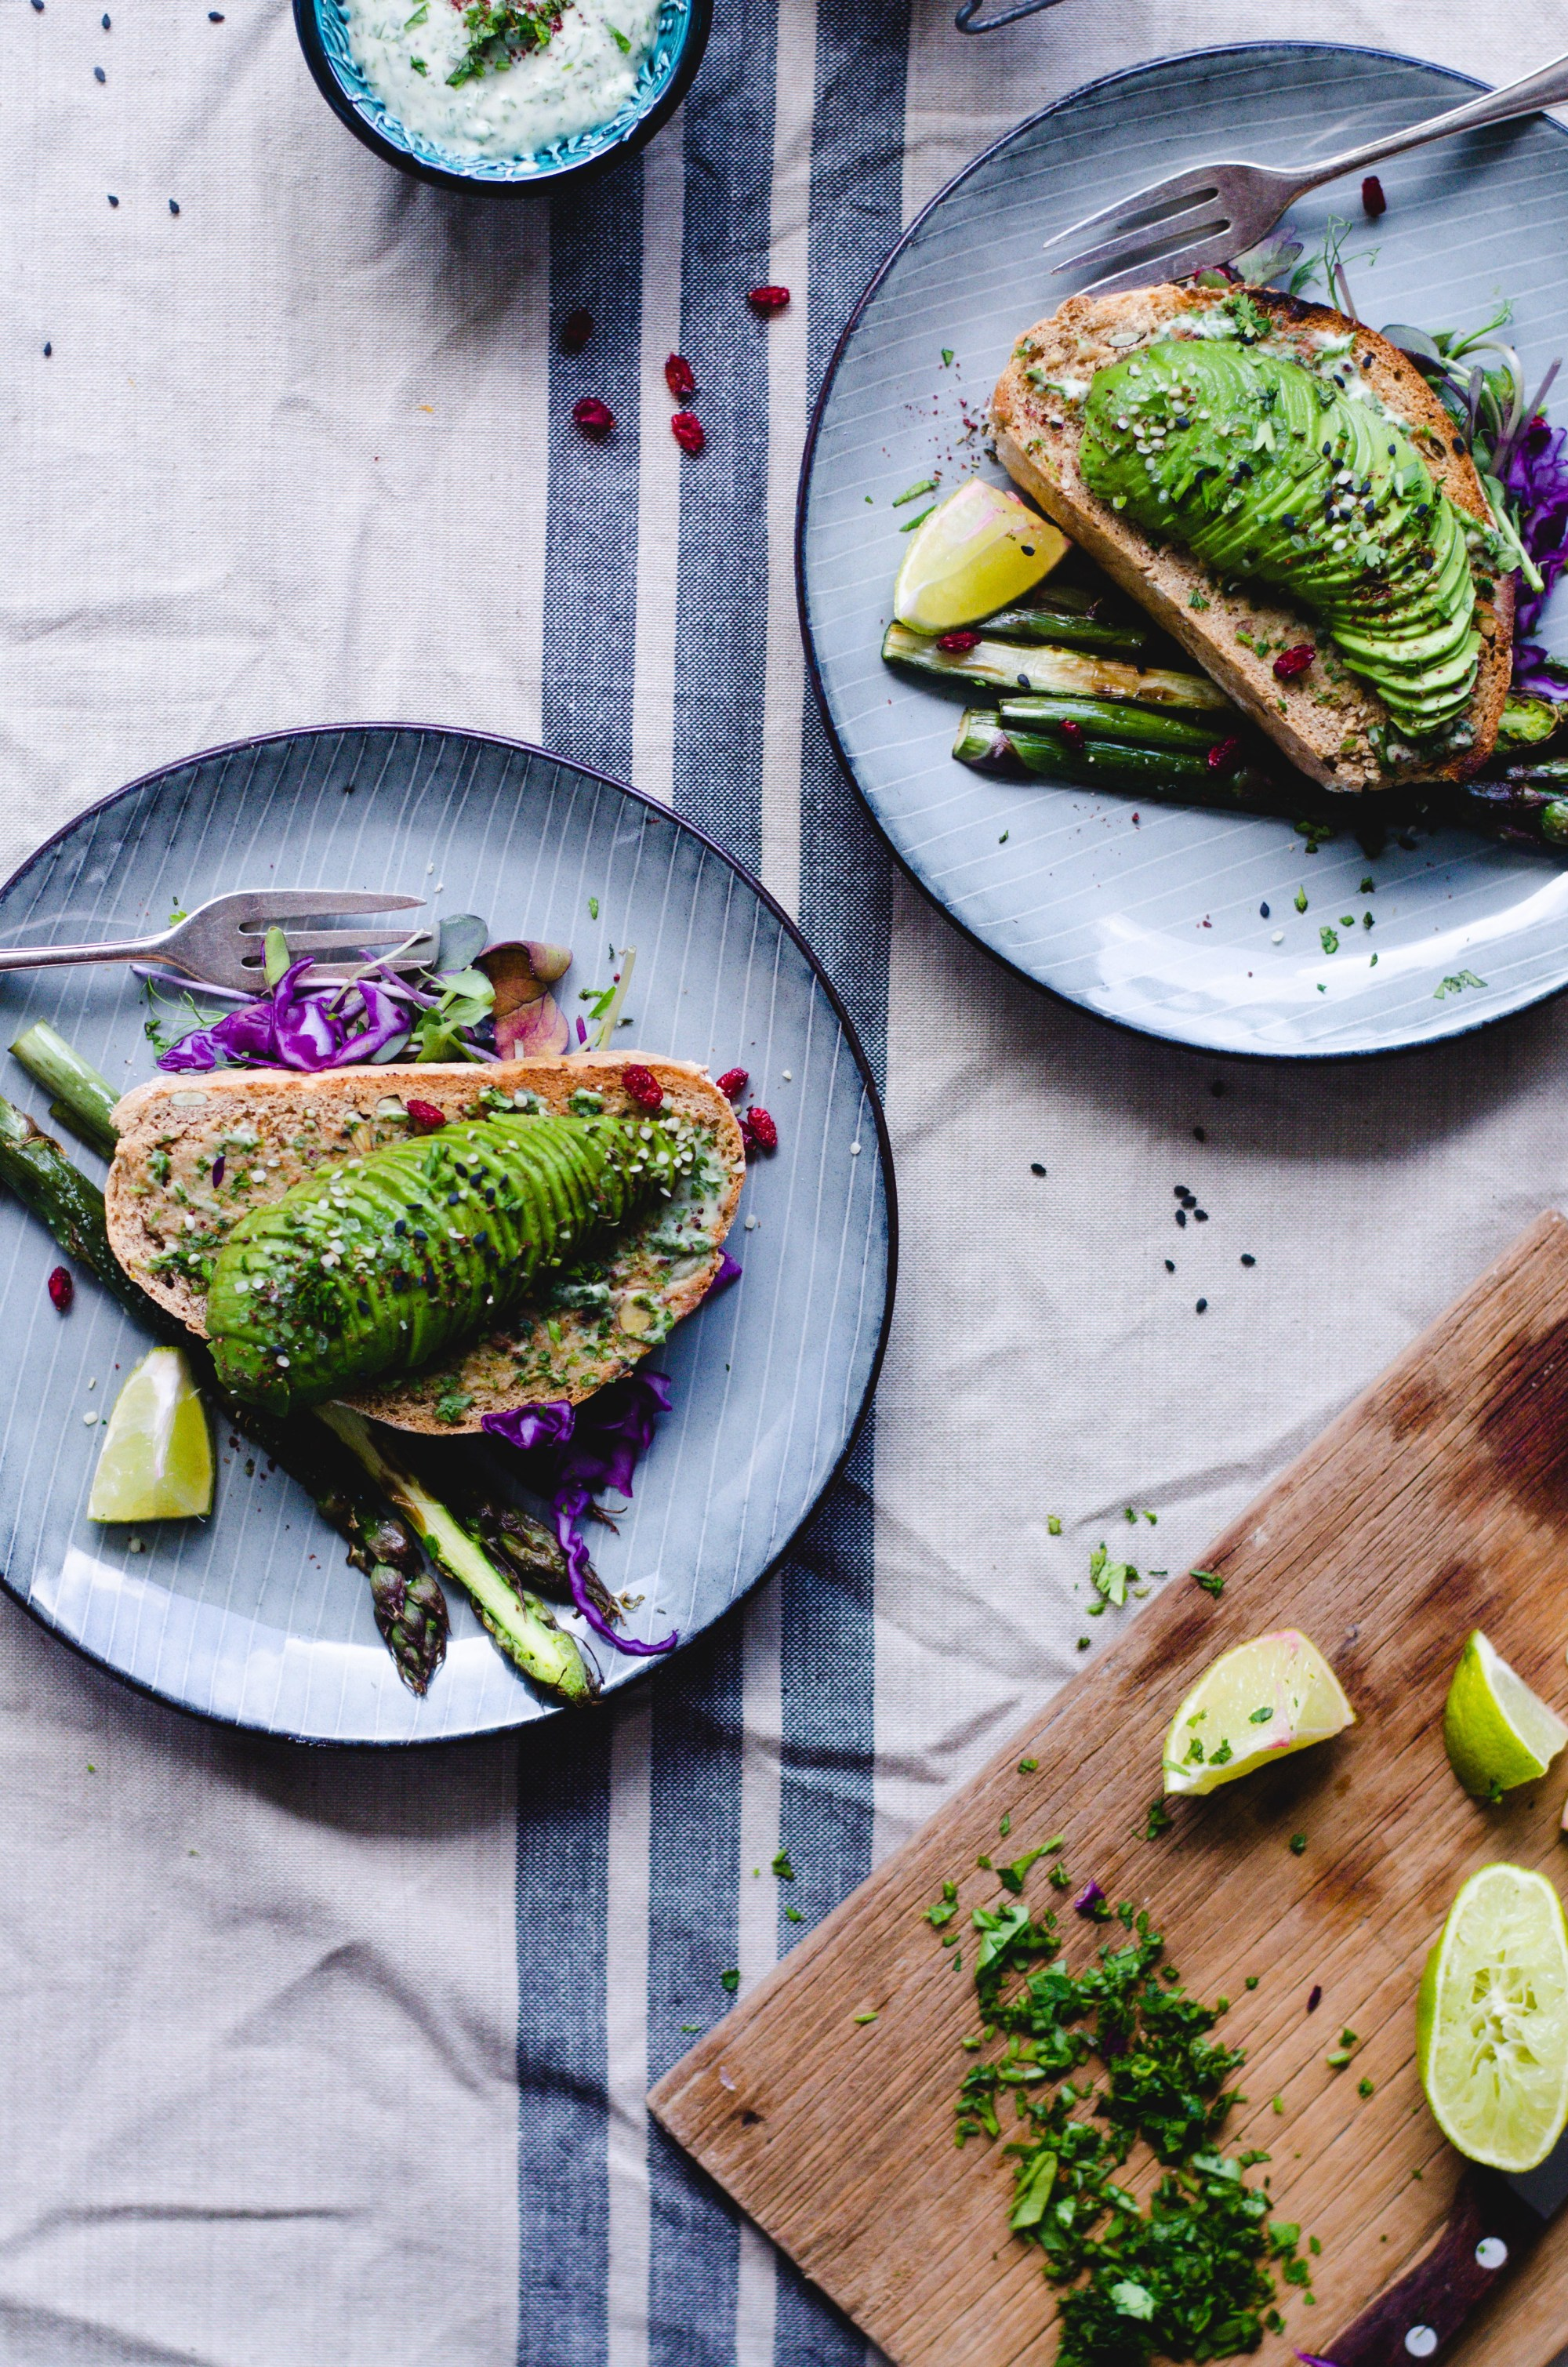 Tahini avocado toast with garlic asparagus. Bursting with flavor! via Fannie the Foodie #avocadotoast #garlicasparagus #healthyeating | https://www.roseclearfield.com